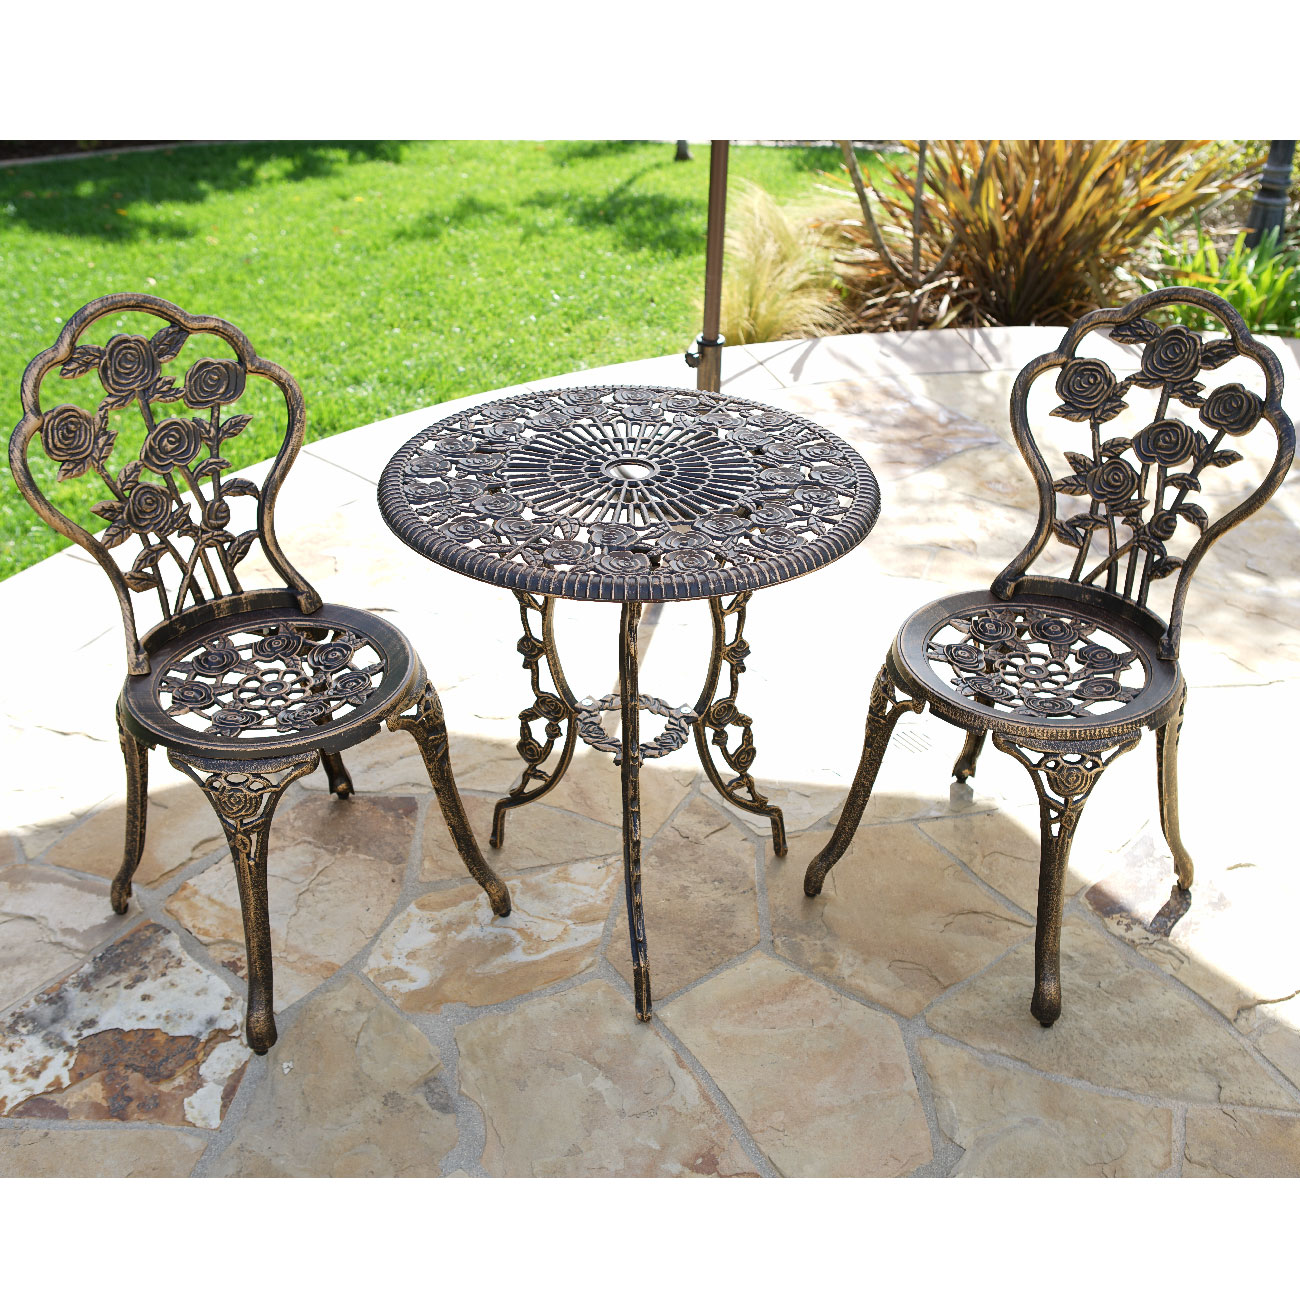 Outdoor Chair Set 3pcs Outdoor Patio Furniture Cast Aluminum Bistro Set